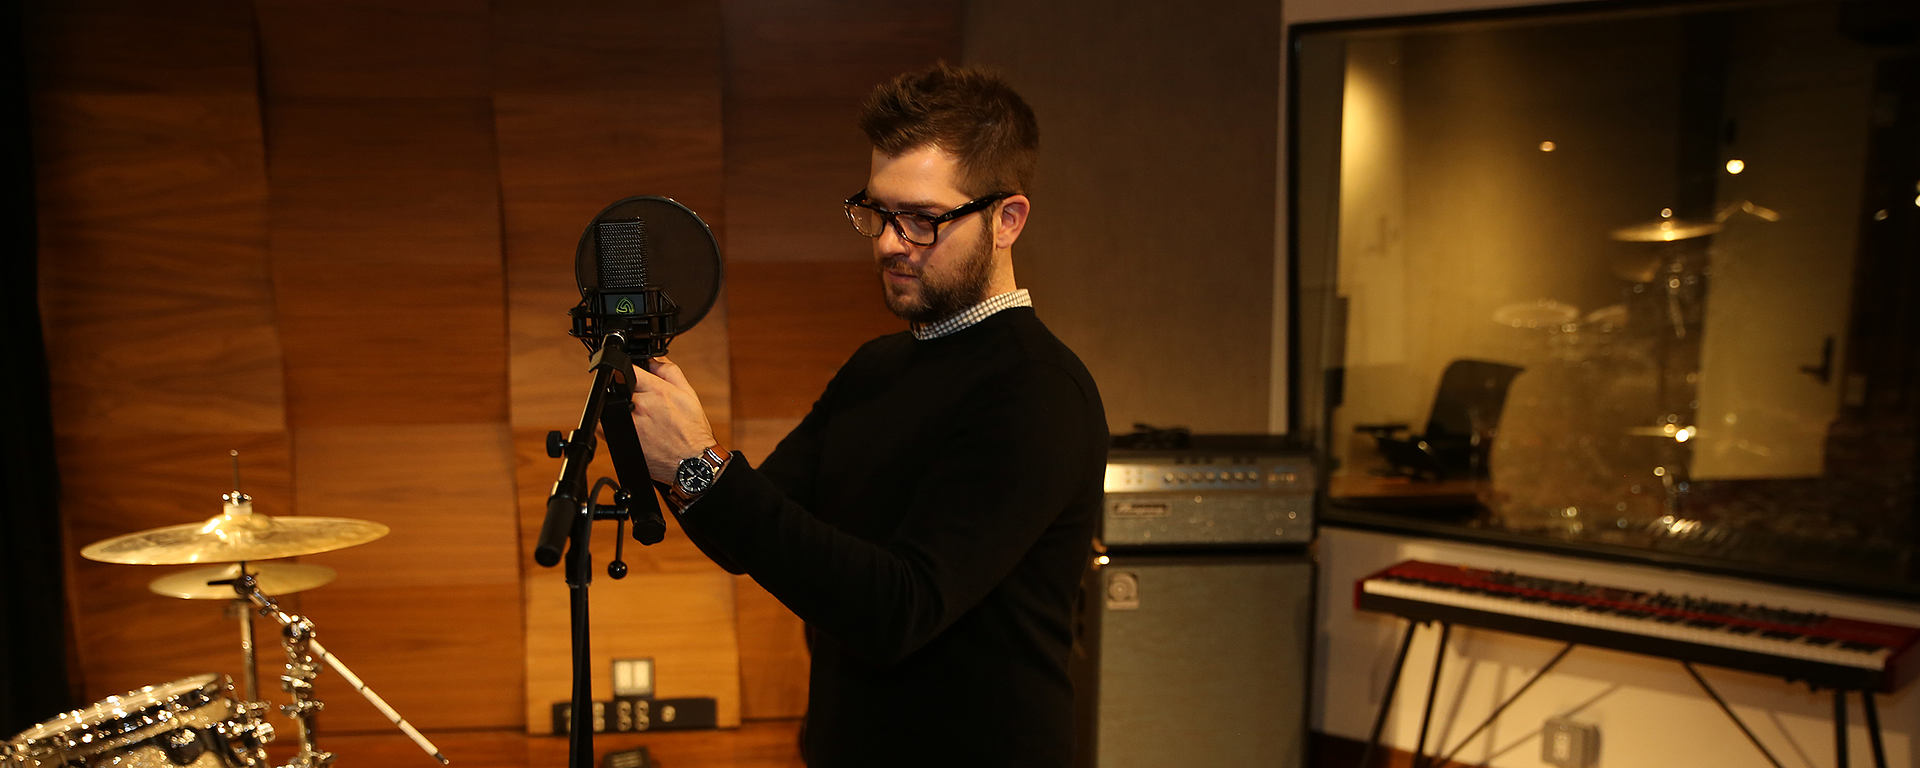 Atlantic Records using the LCT 840 multi-pattern tube microphone, the DTP 640 REX dual element kick drum mic, and the LCT 550, one of the quietest mics in the world.